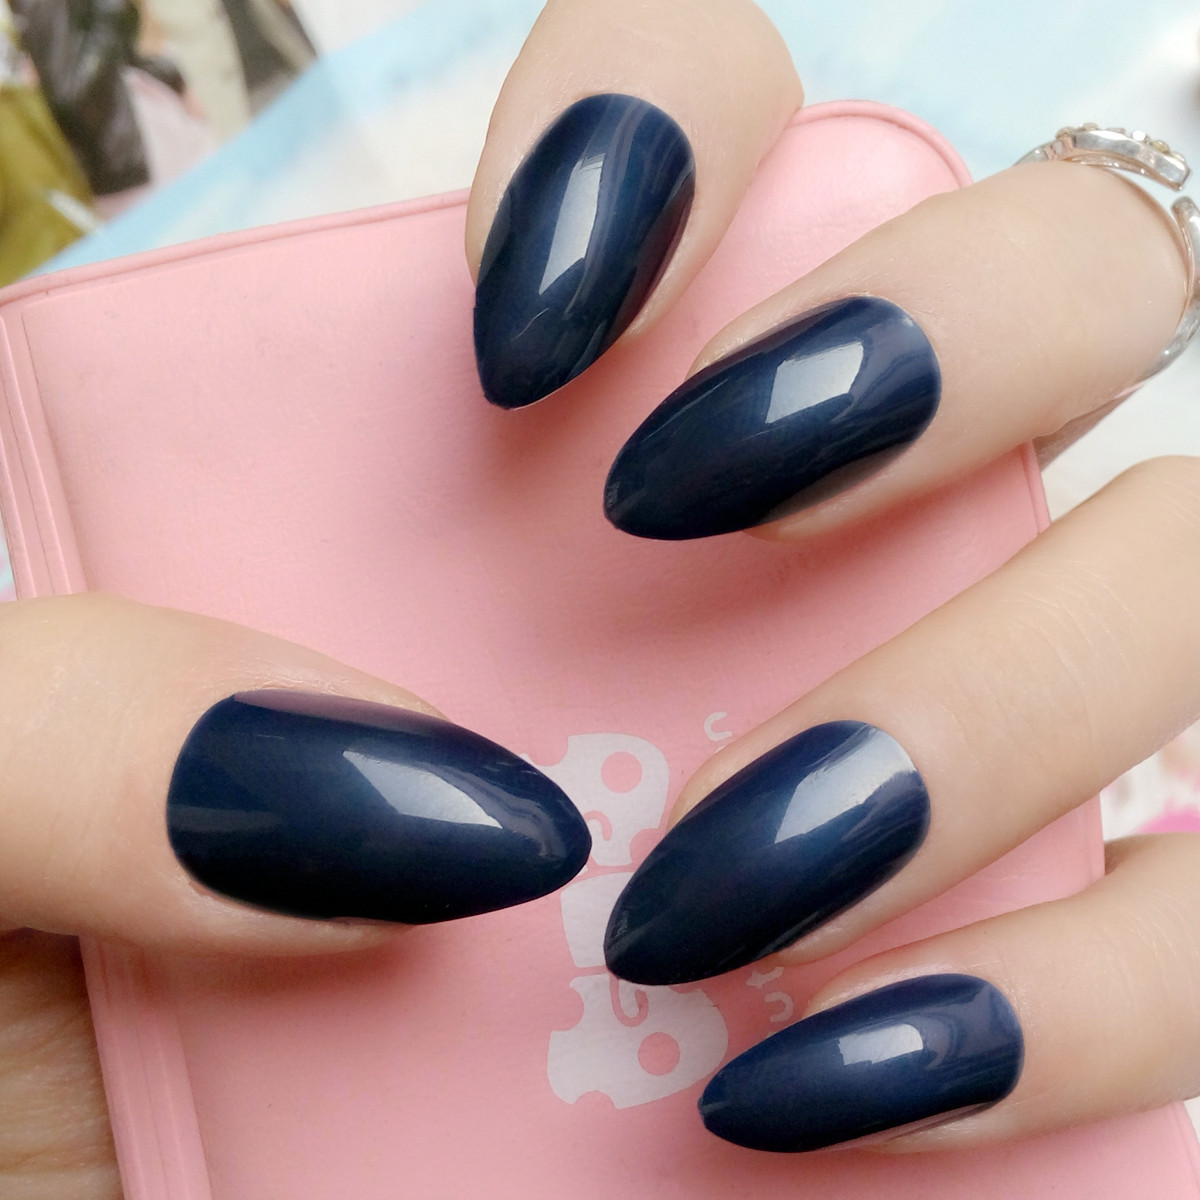 Candy Color Navy Blue Fake Nails Stiletto Nails Tips Short Size ...